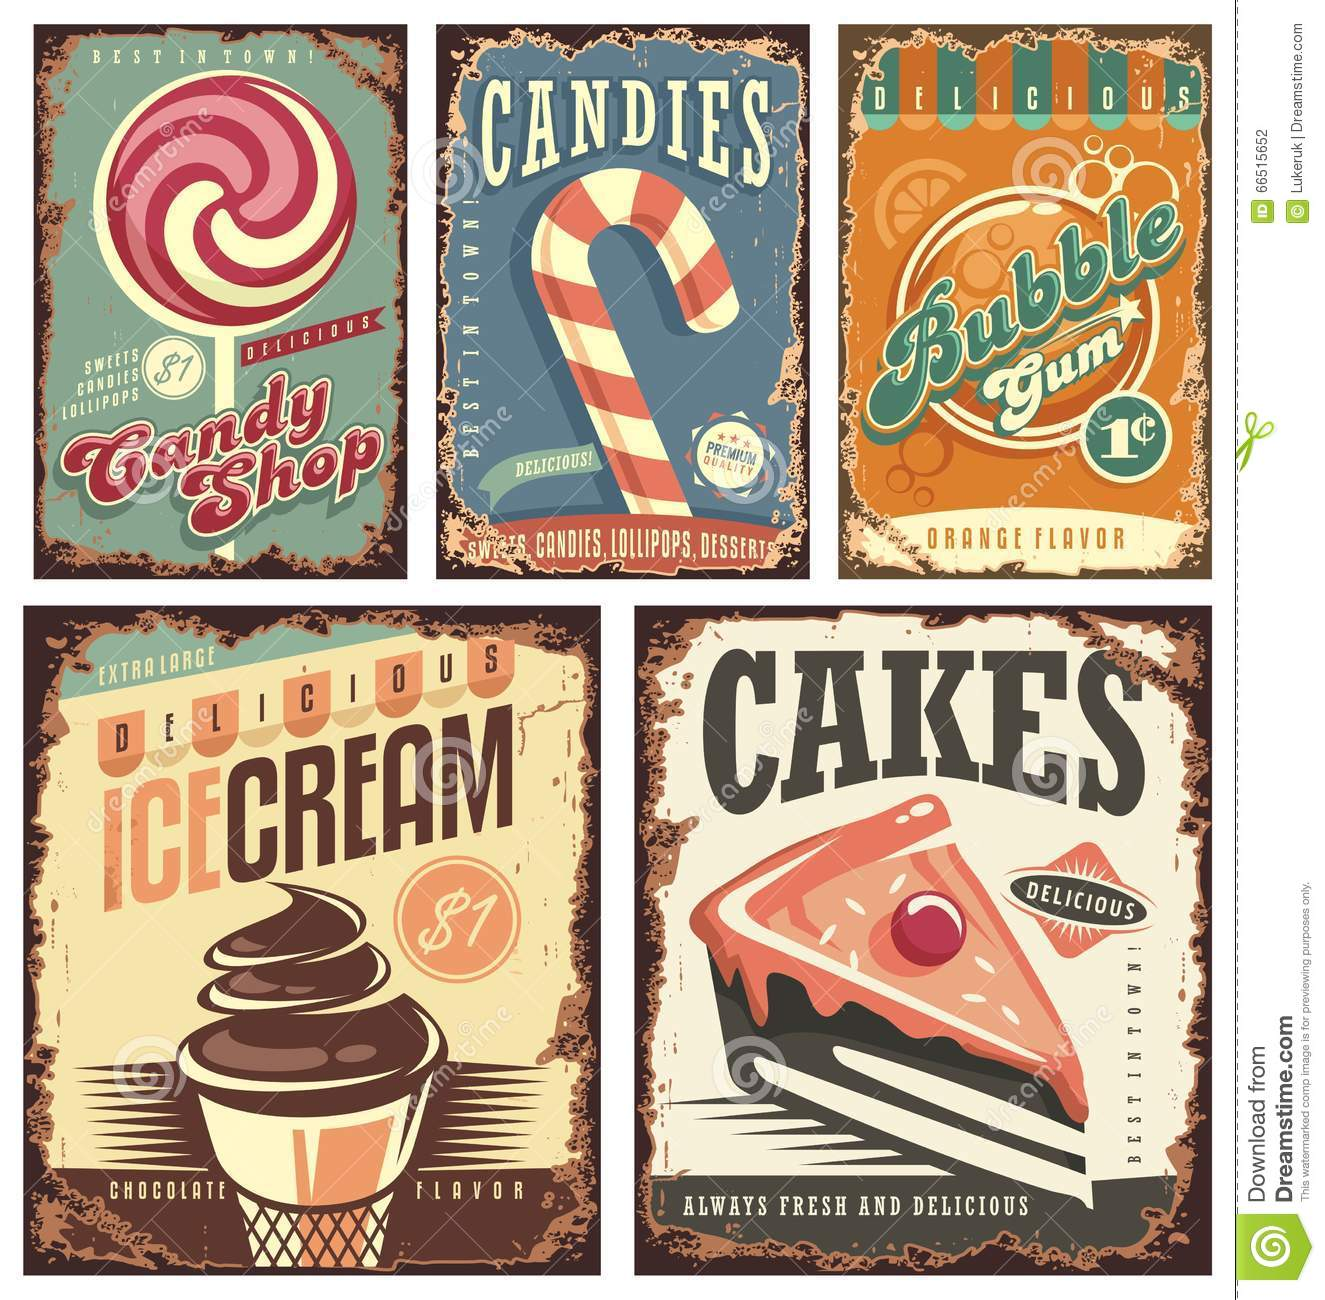 Vintage Candy Shop Collection Of Tin Signs Stock Vector. Custom Wood Signs Of Stroke. Song Imagine Dragons Signs. Herbal Signs. Metal Wall Signs Of Stroke. Town Signs. Centor Criterion Signs. Saying Signs. Emotional Intelligence Signs Of Stroke